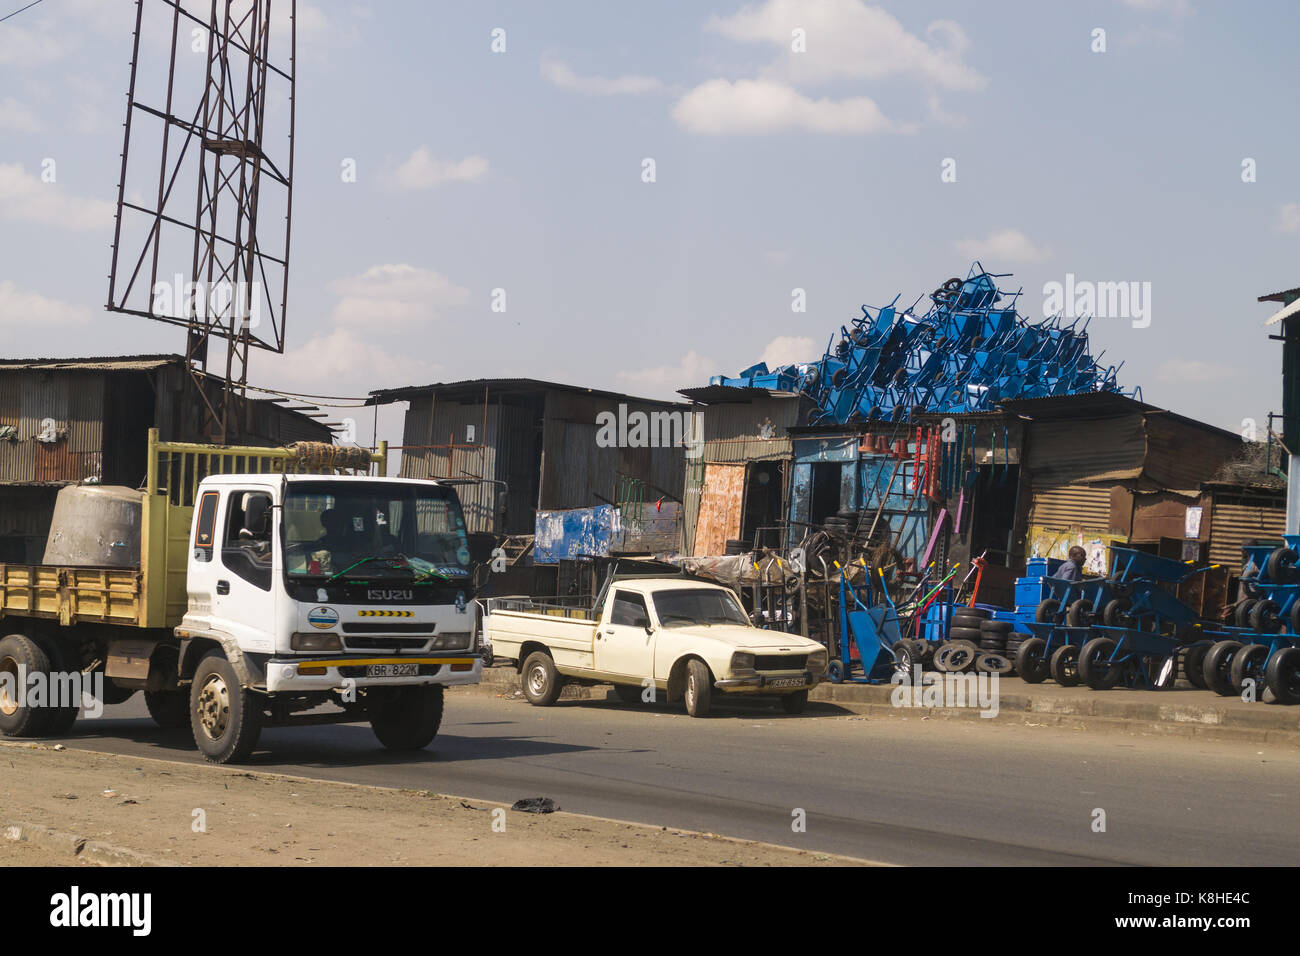 Roadside shop with wheelbarrows and other products for sale as vehicles drive past, Nairobi, Kenya - Stock Image